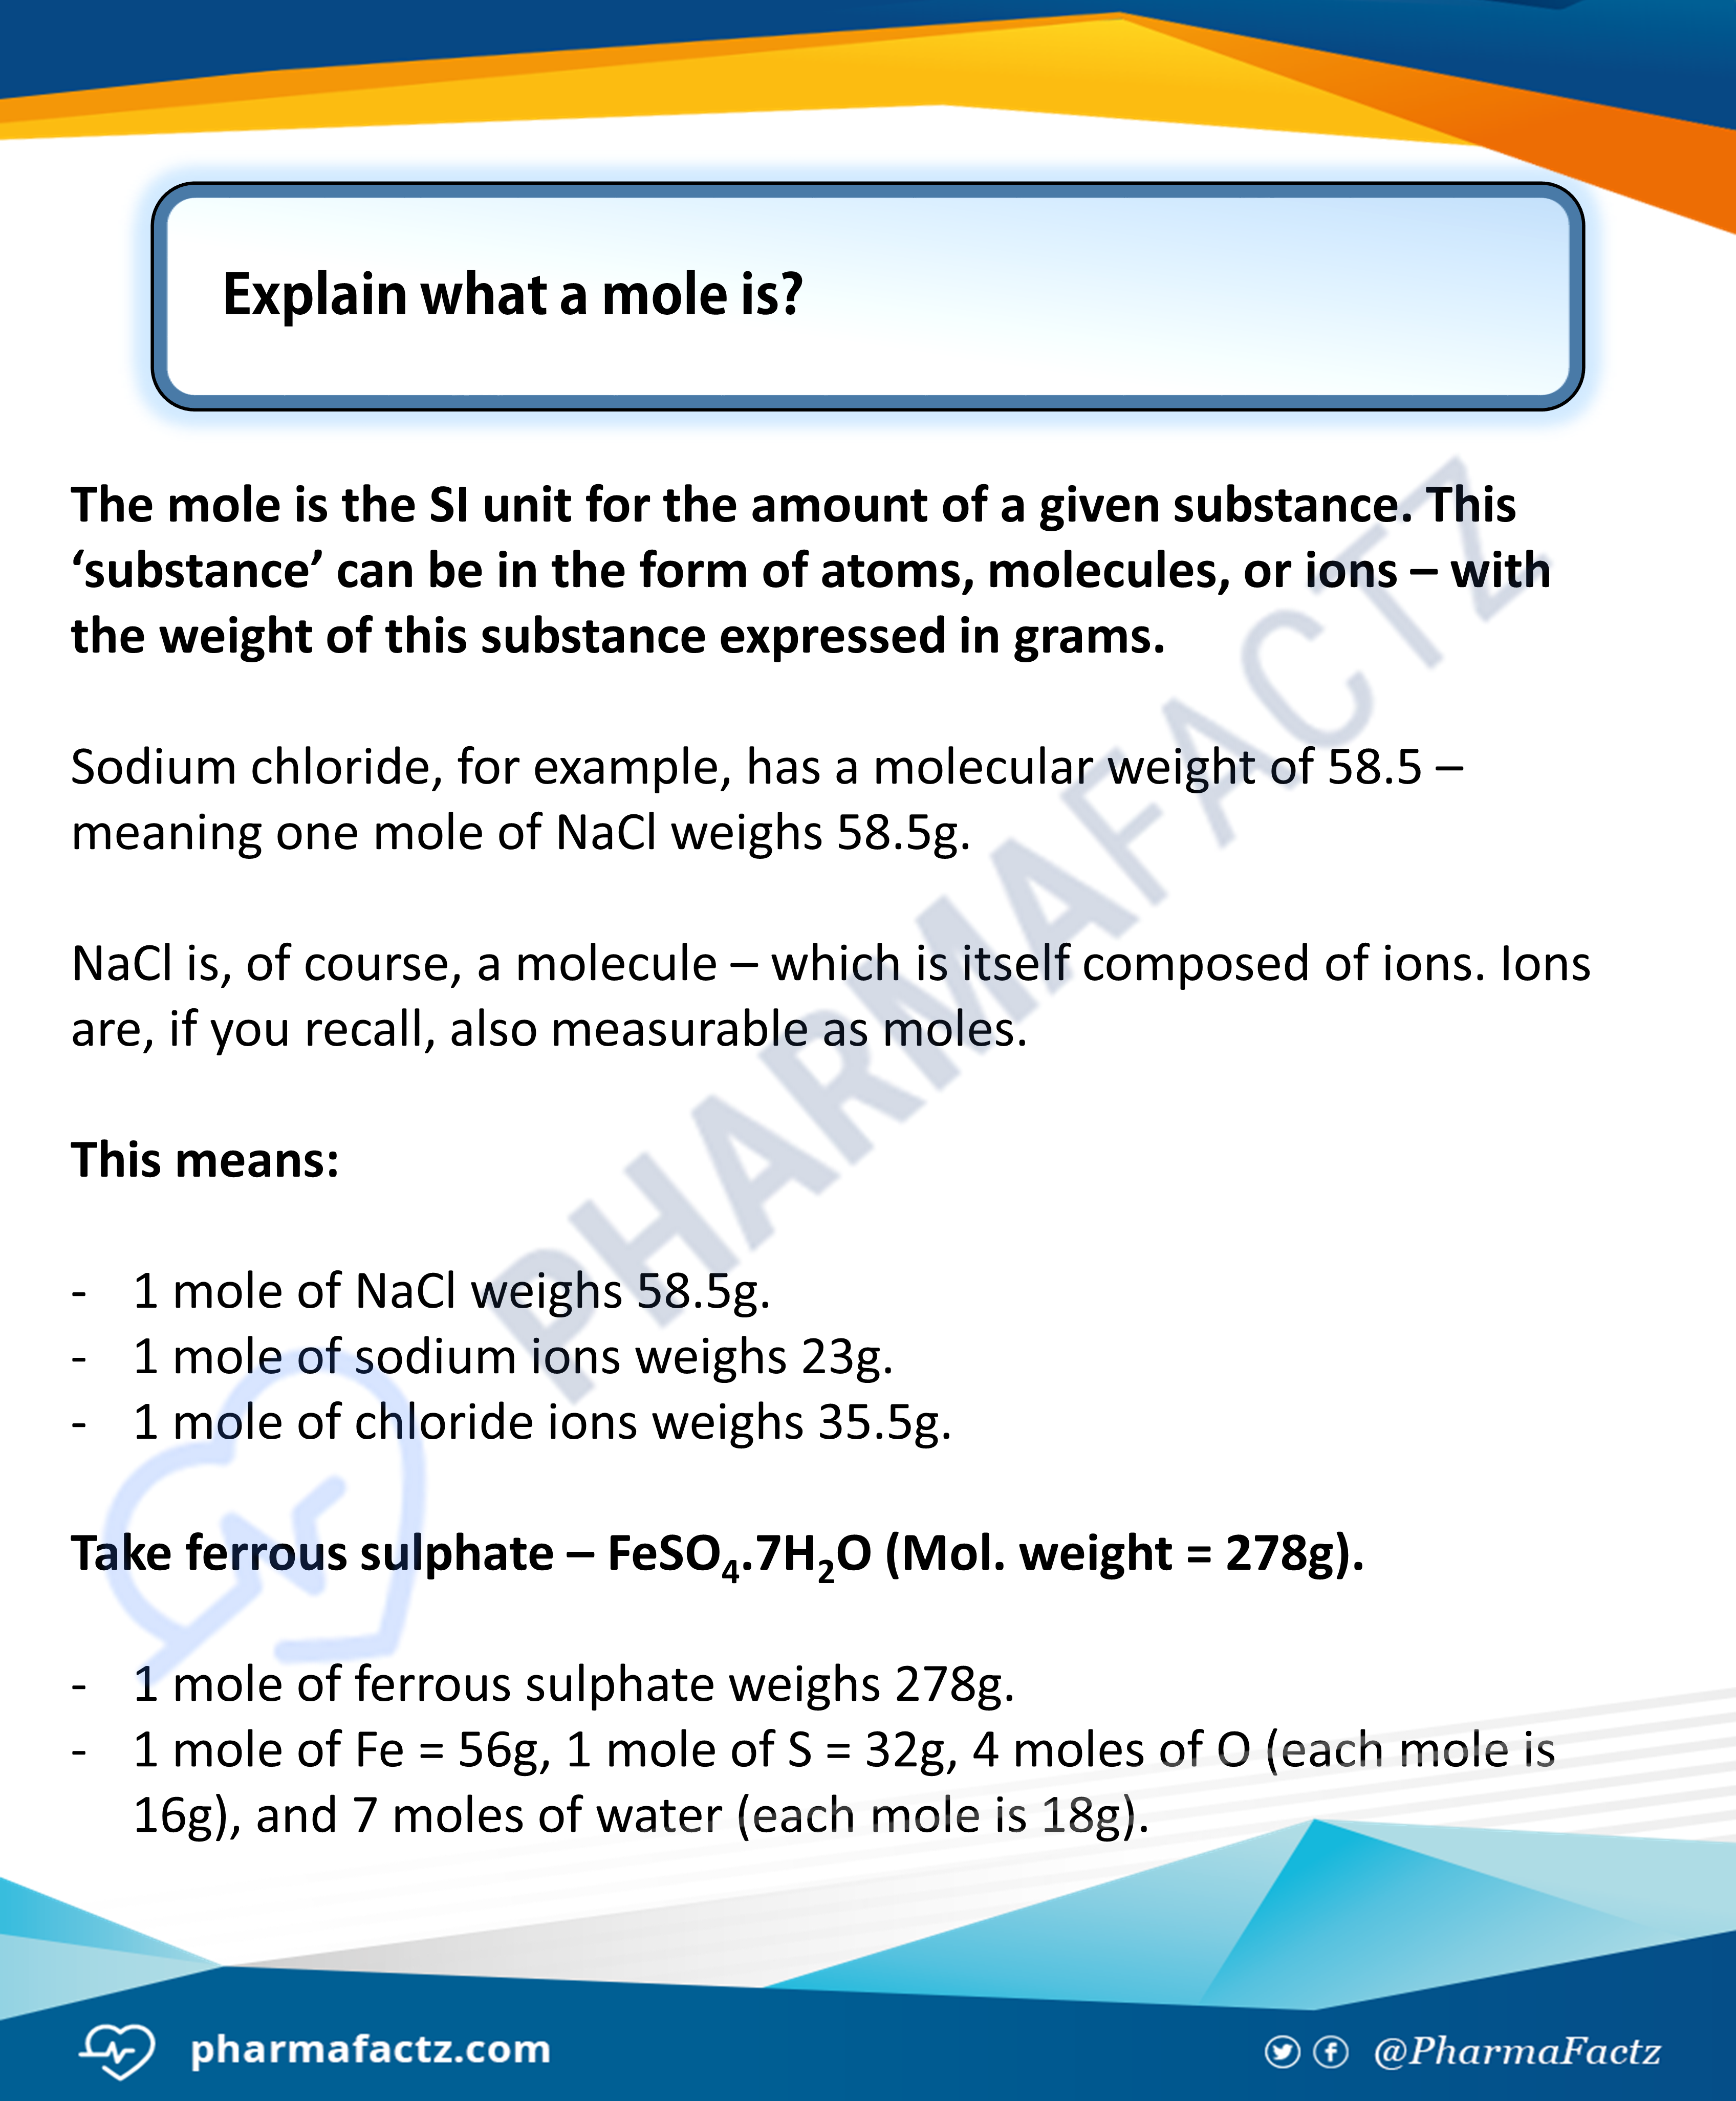 What is a Mole?